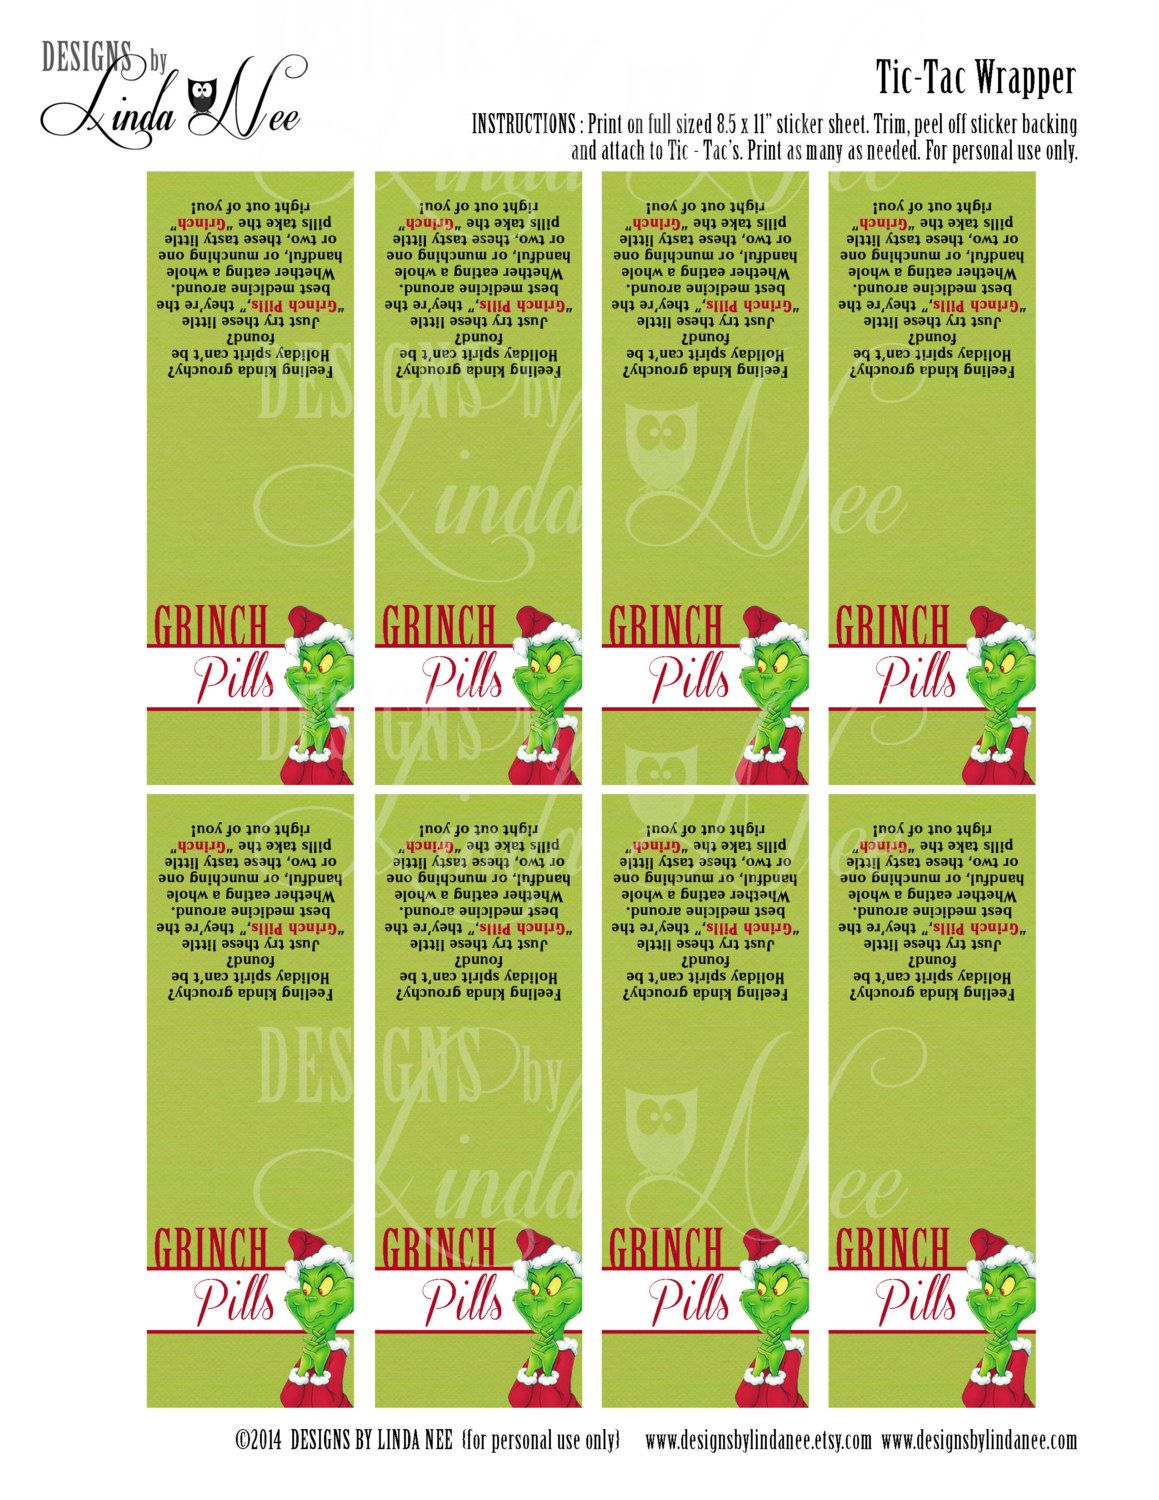 image about Grinch Pills Free Printable referred to as Tic Tac GRINCH Products with poem Printable by way of